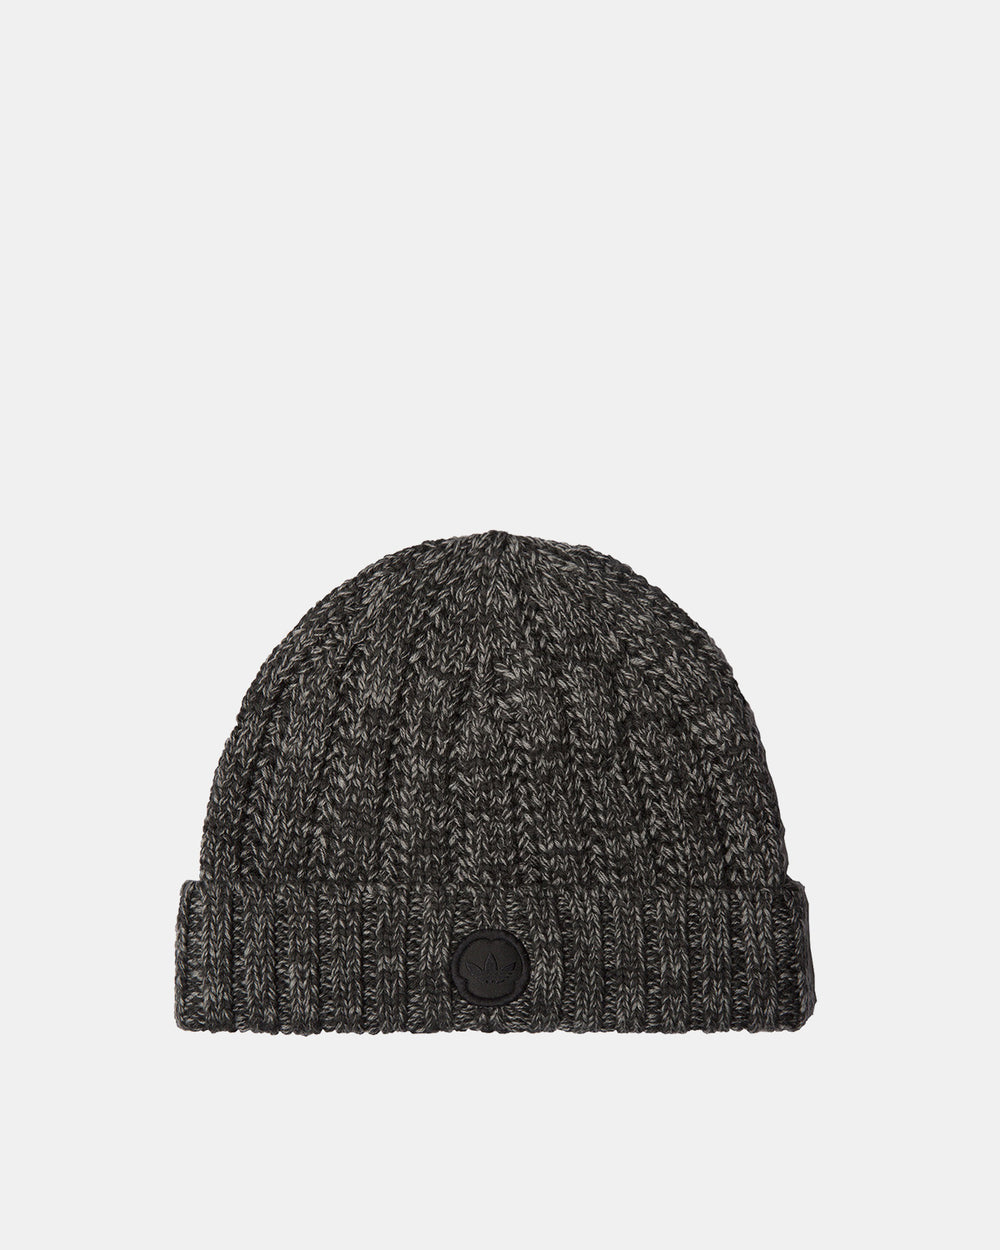 Wings + Horns x adidas Originals Beanie (Melange)